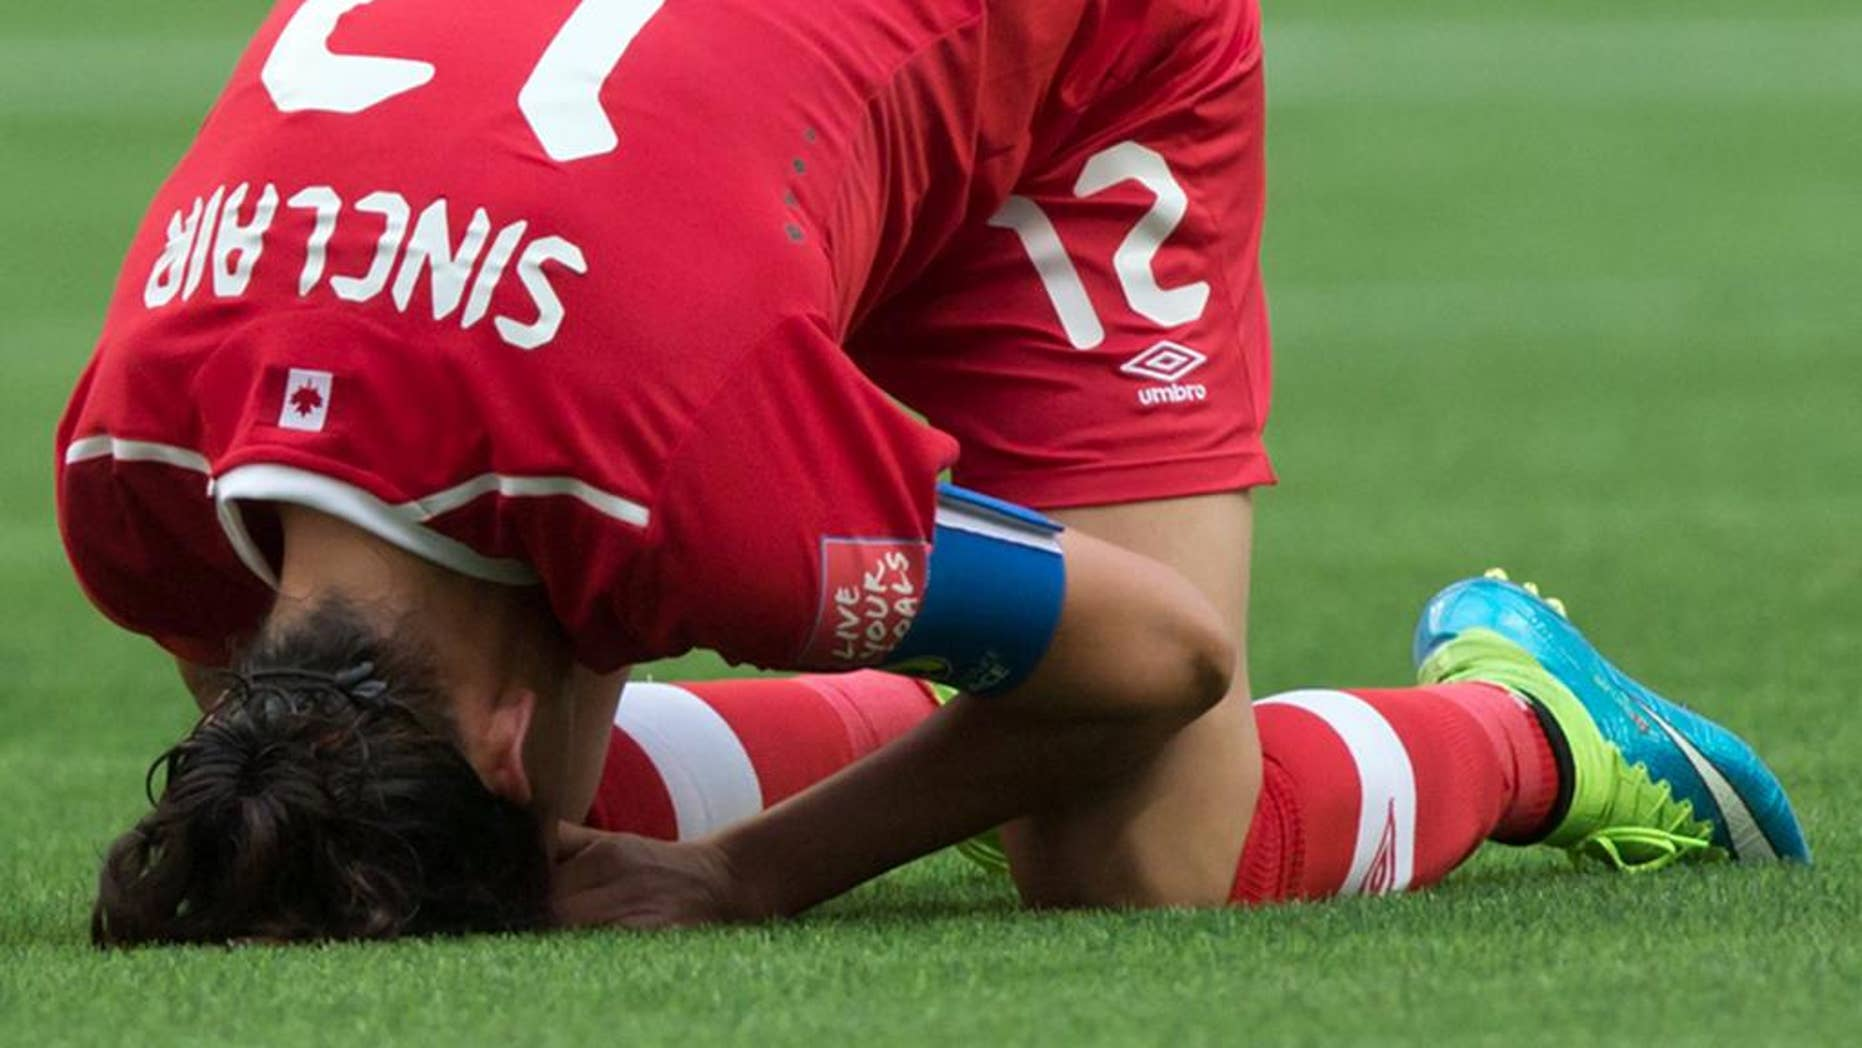 Canada's Christine Sinclair reacts after losing 2-1 to England during a FIFA Women's World Cup quarterfinal soccer game in Vancouver, British Columbia, Canada, on Saturday, June 27, 2015. (Darryl Dyck/The Canadian Press via AP) MANDATORY CREDIT